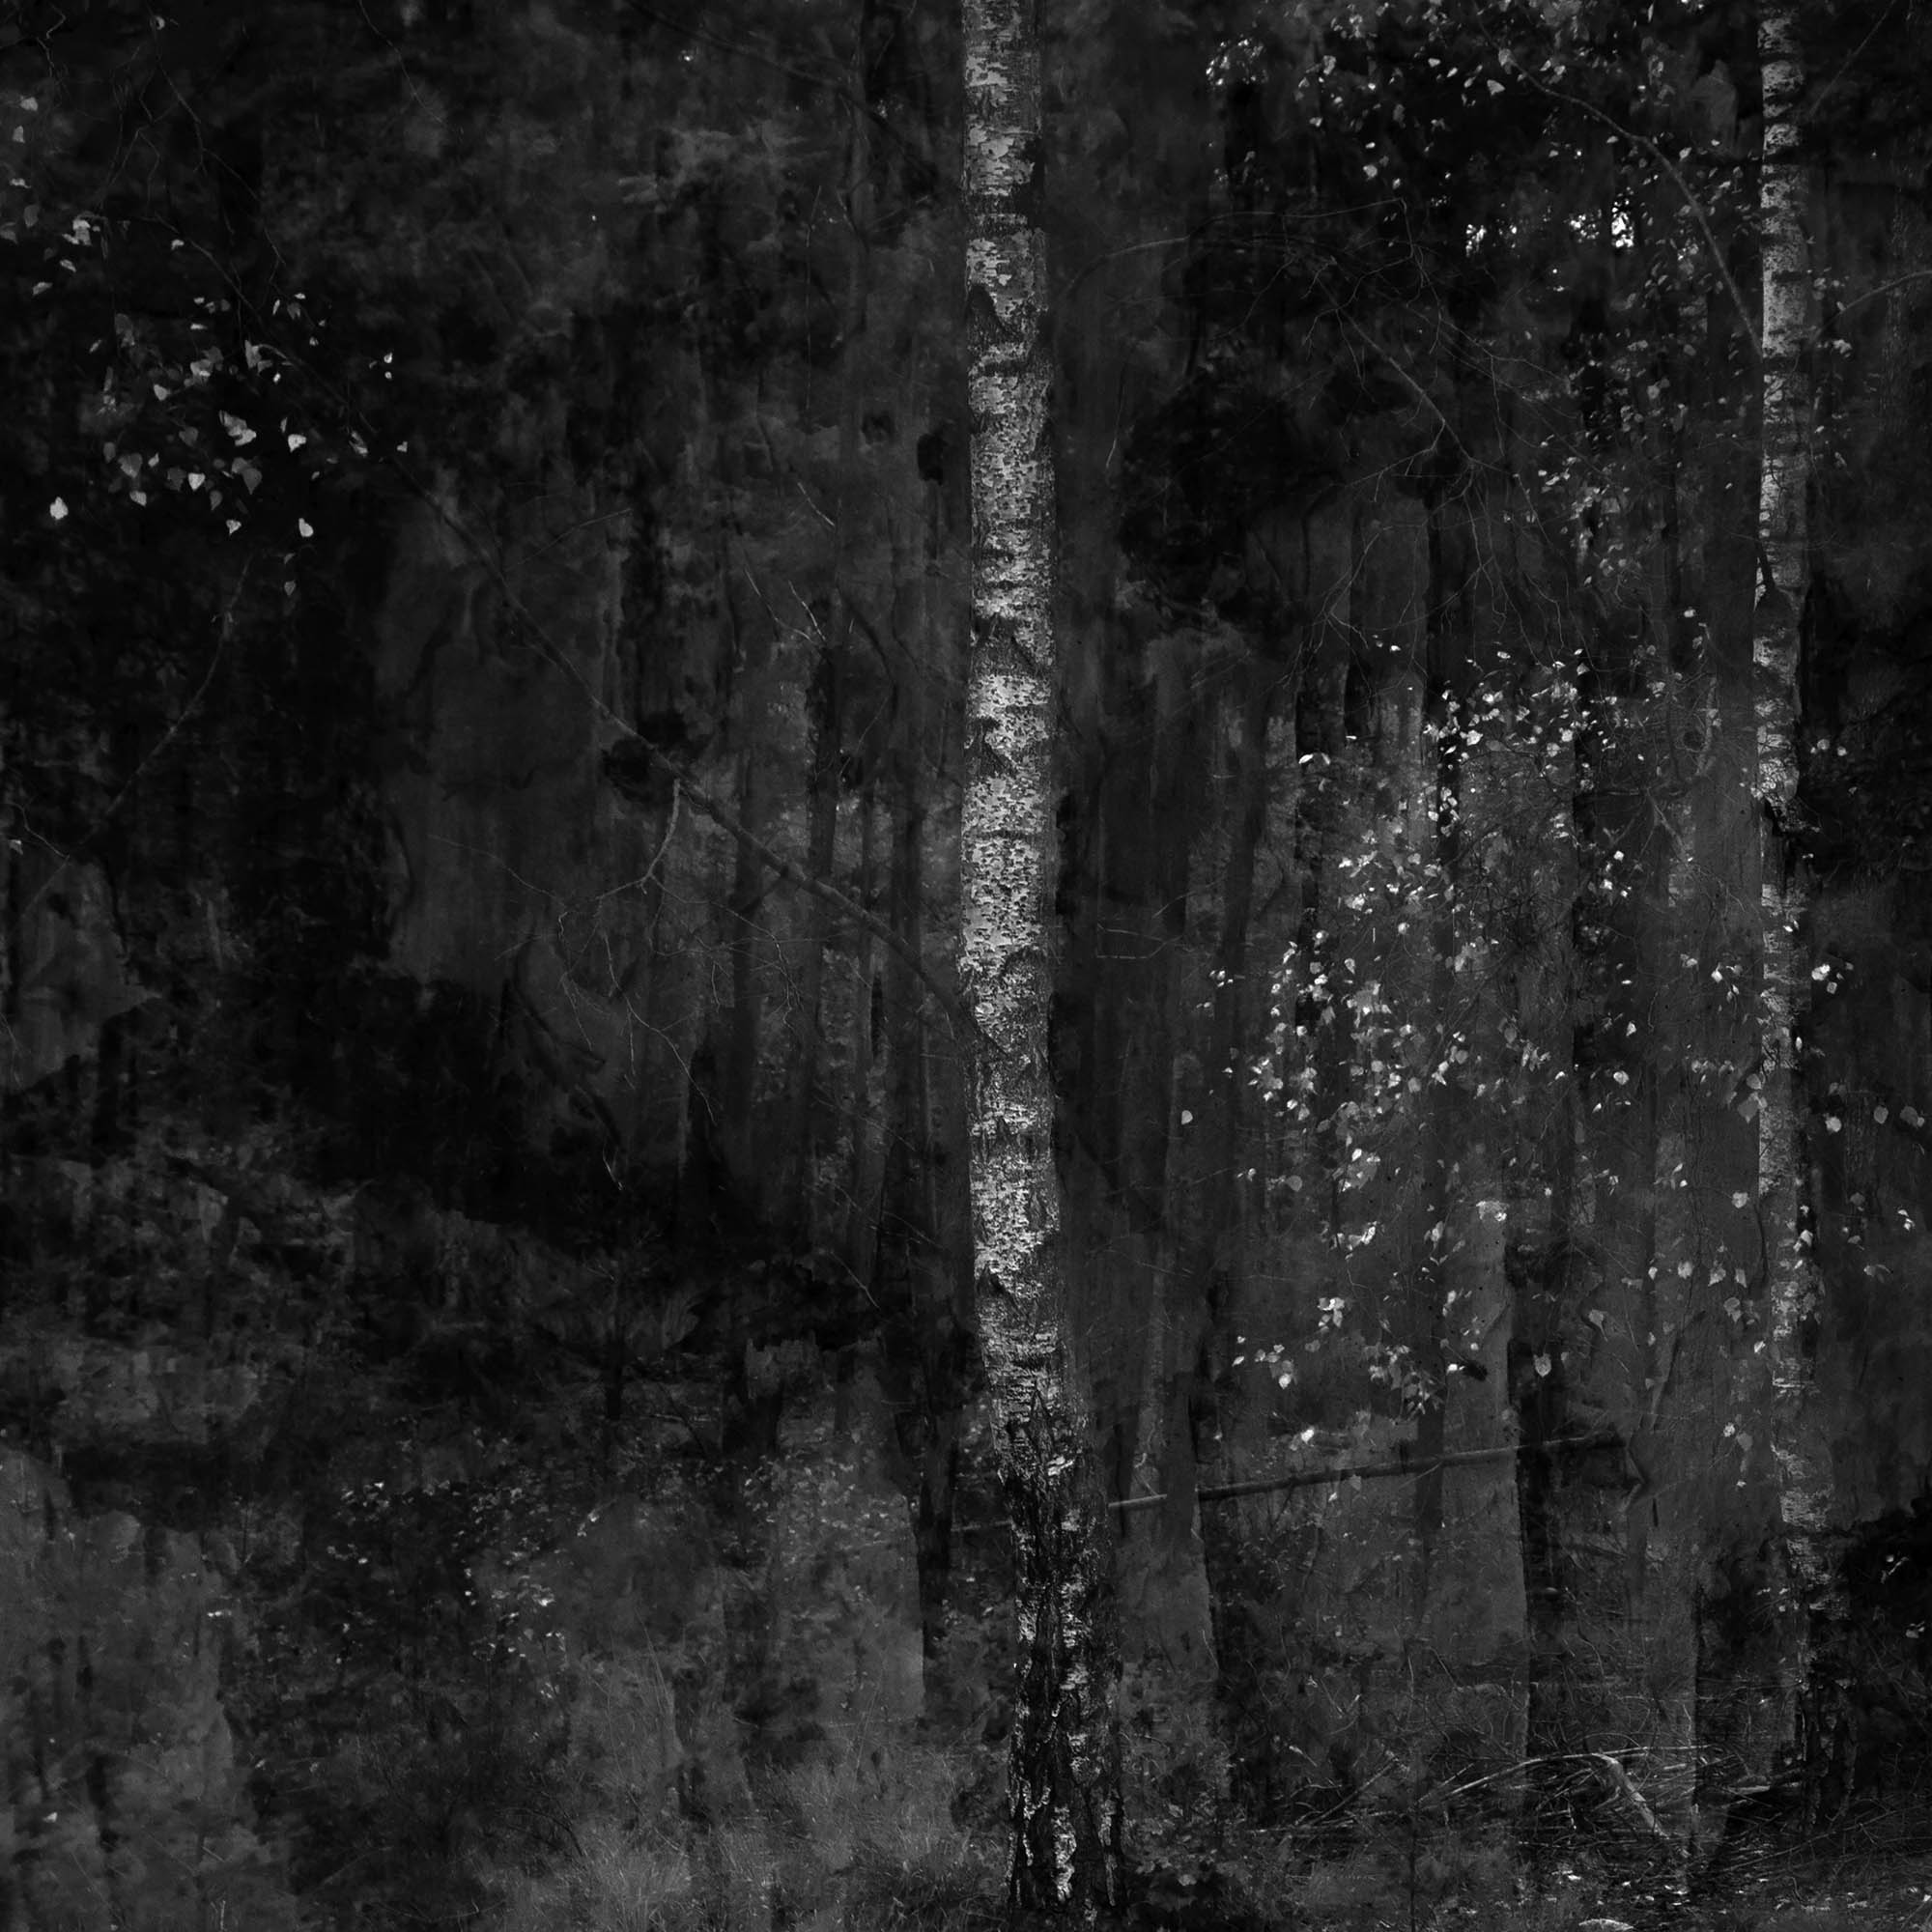 © Annette Wijdeveld (Hattem, The Netherlands) | Dialogue with Silence